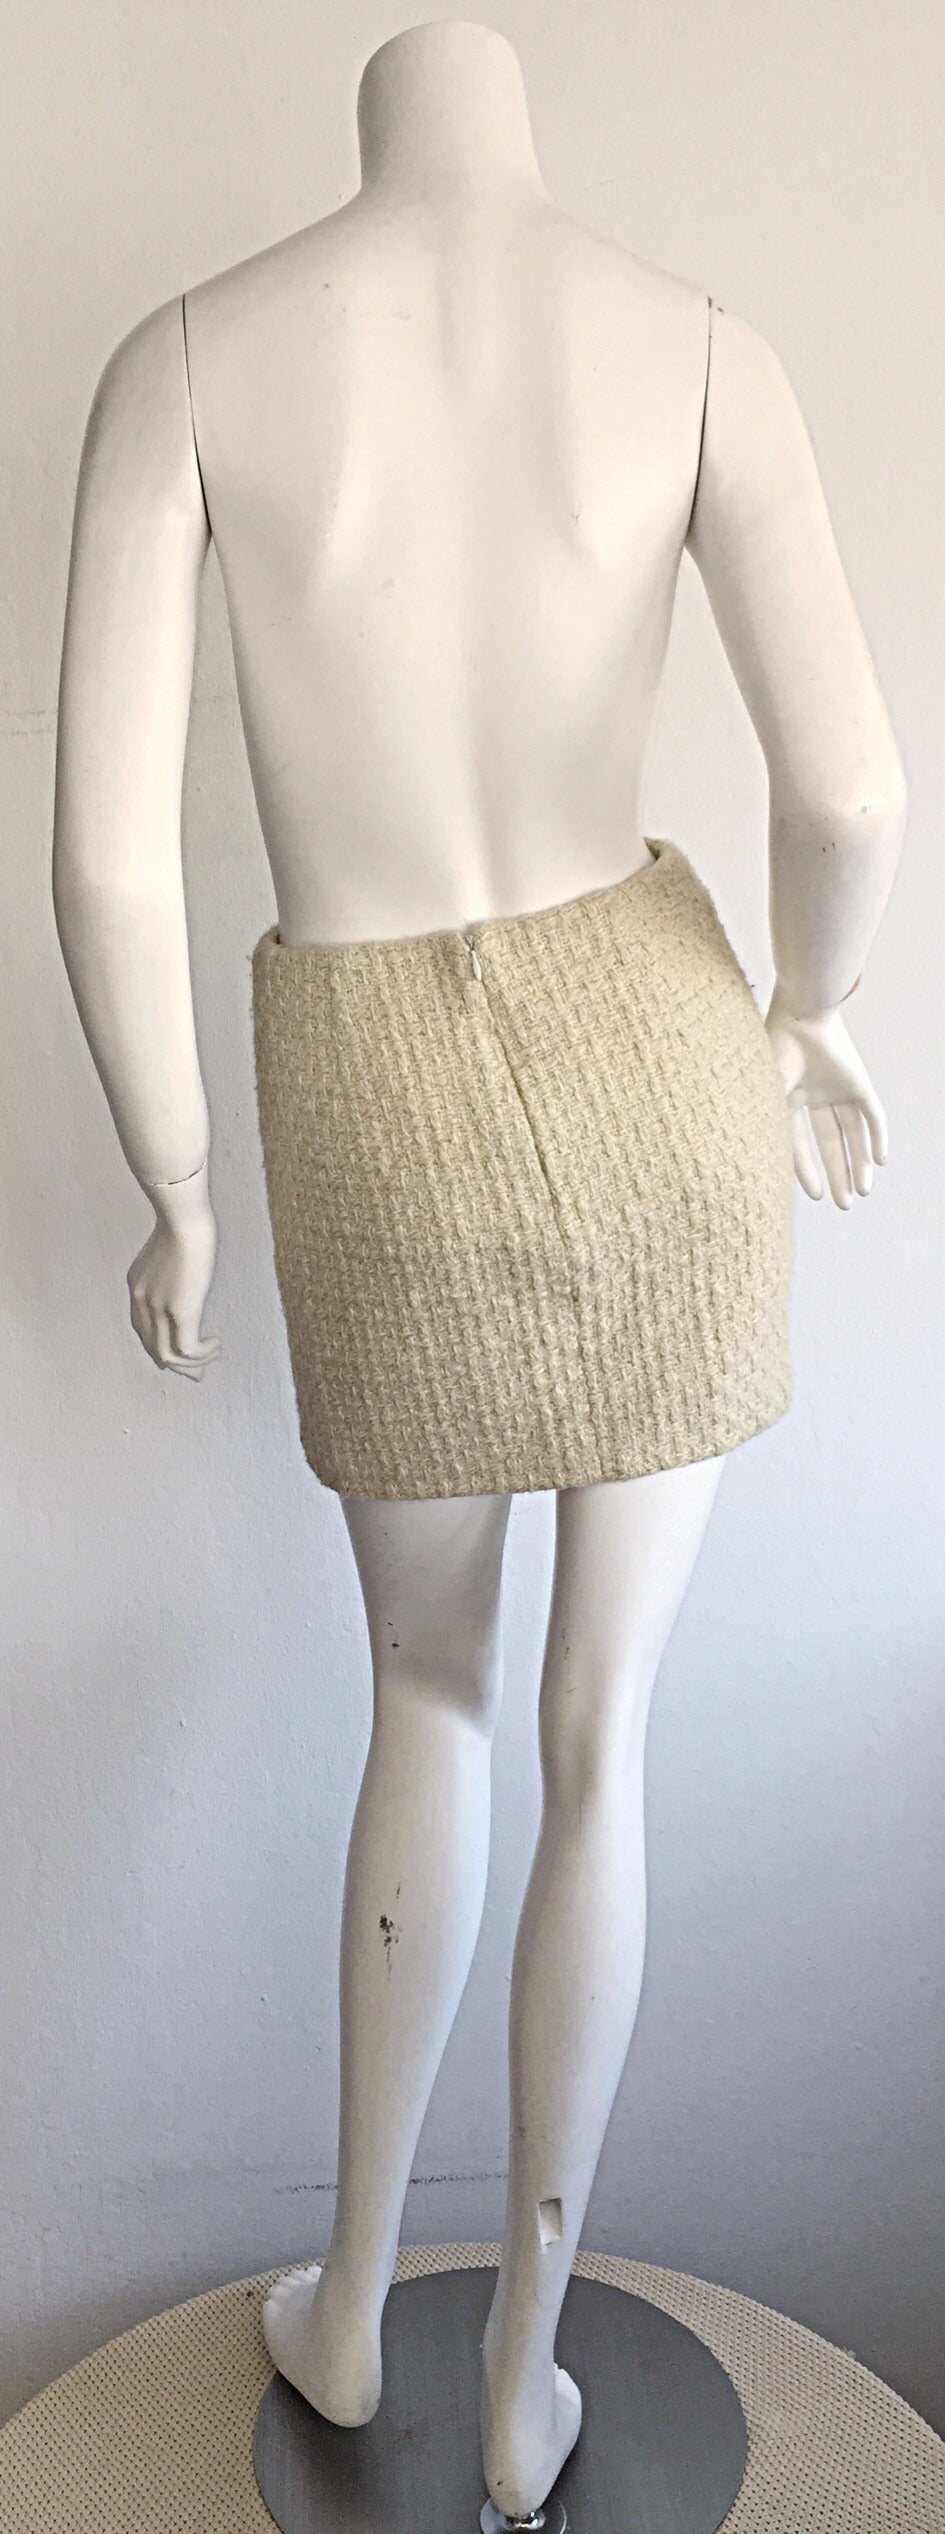 Sexy 1990s Vintage Gianni Versace Couture Ivory Off - White Cashmere Mini Skirt 6